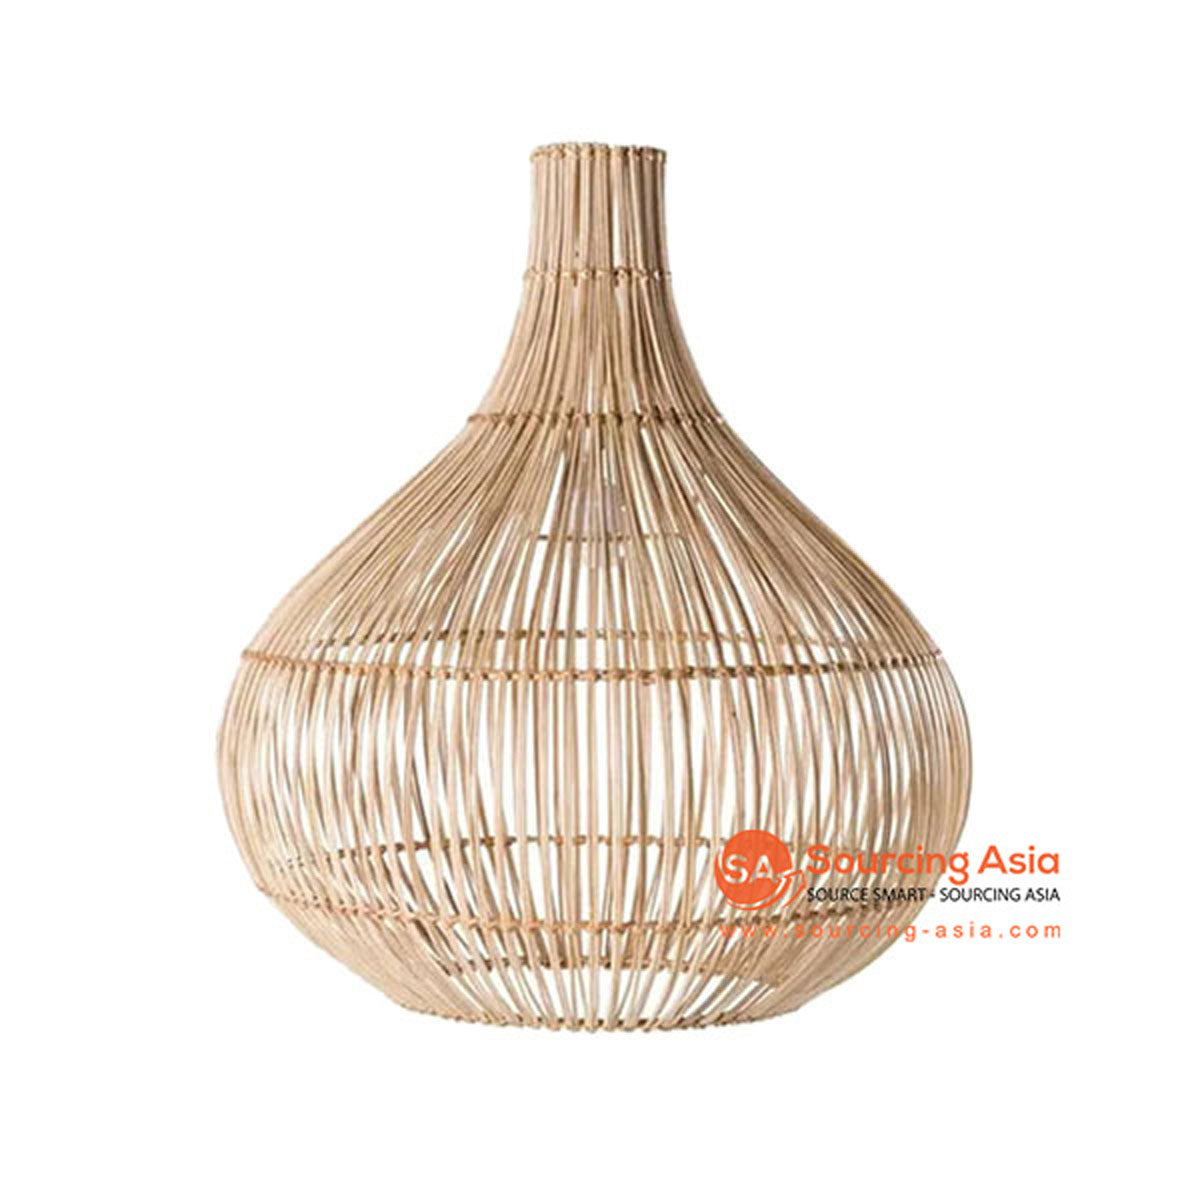 SHL064-7 NATURAL RATTAN PENDANT LAMP